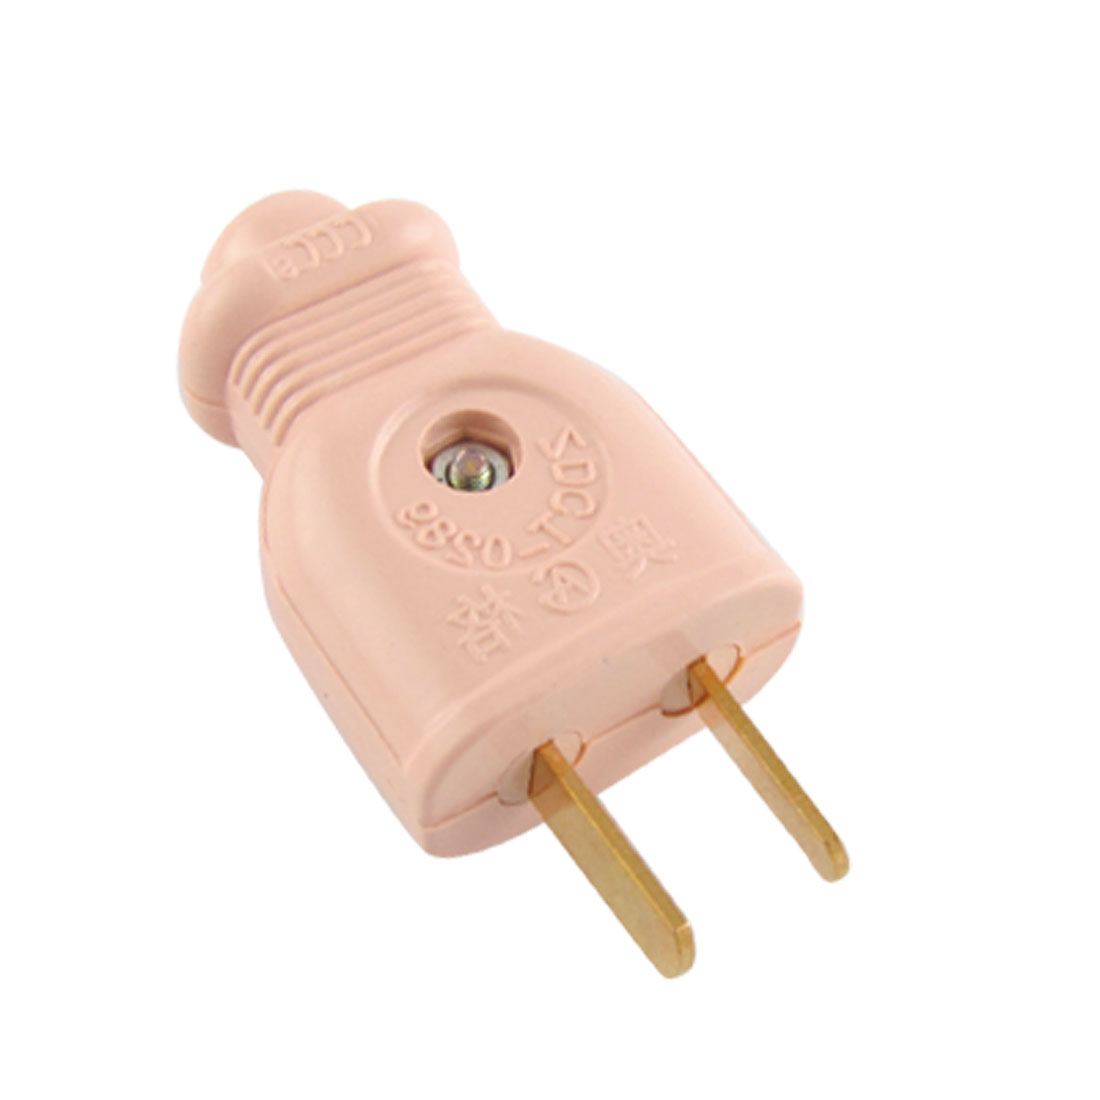 US Plug Pale Pink Plastic Shell Power Cable Plug Connector AC 250V 10A